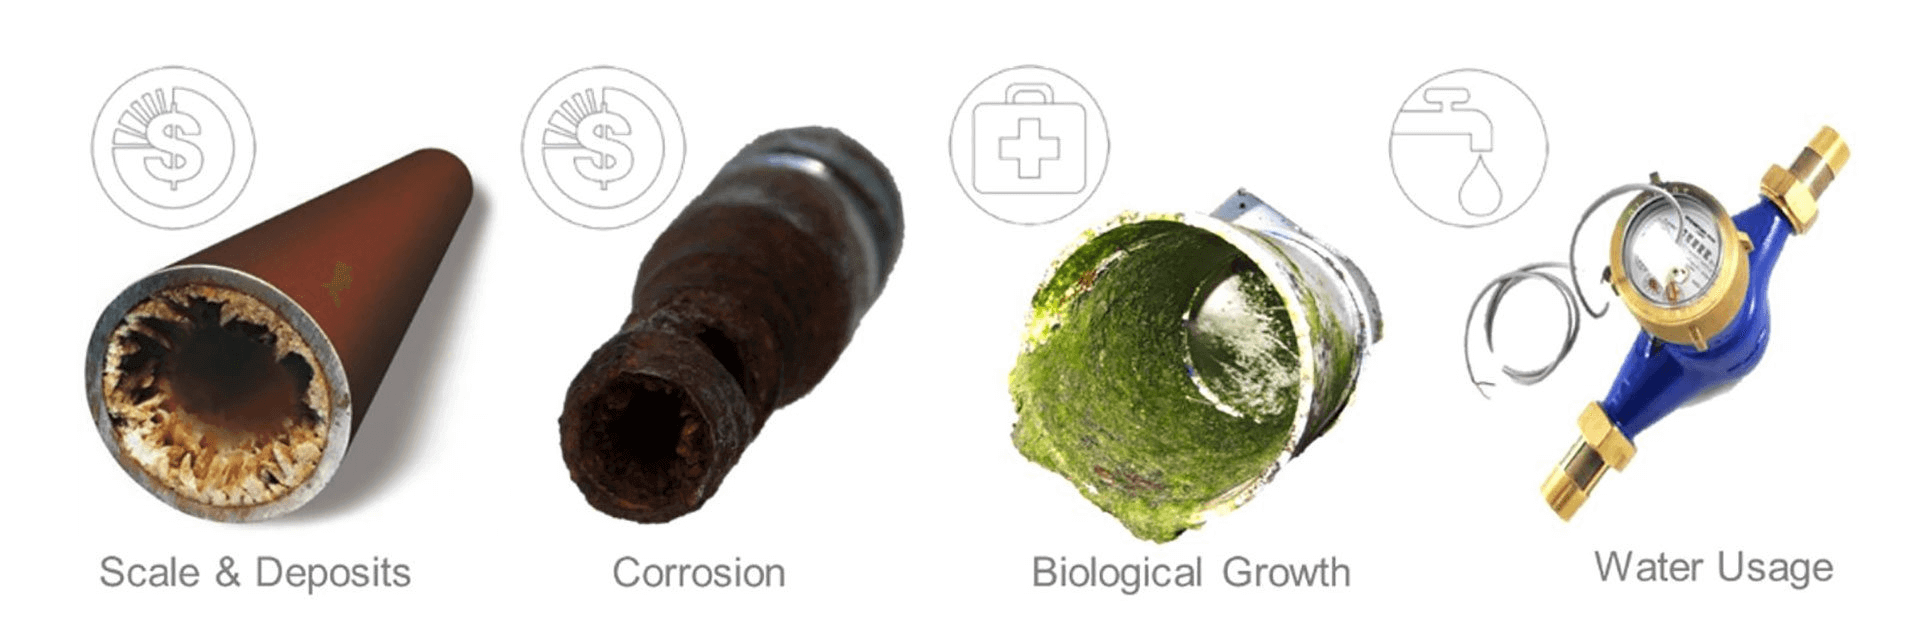 Pipe Scaling and Corrosion